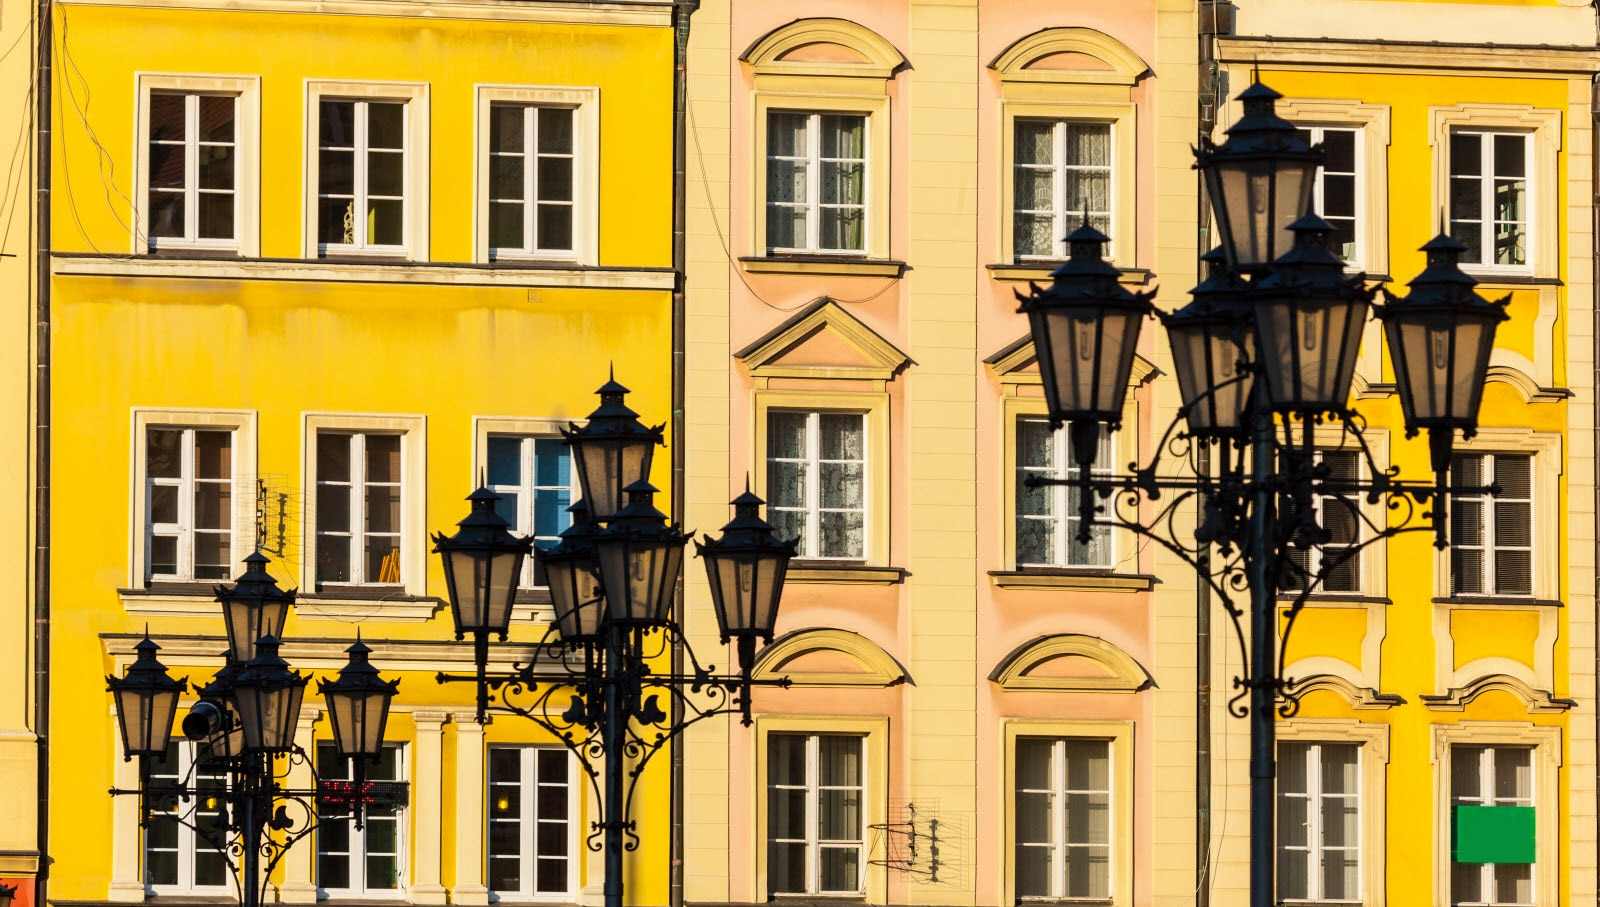 Market square tenements in Wroclaw, Poland